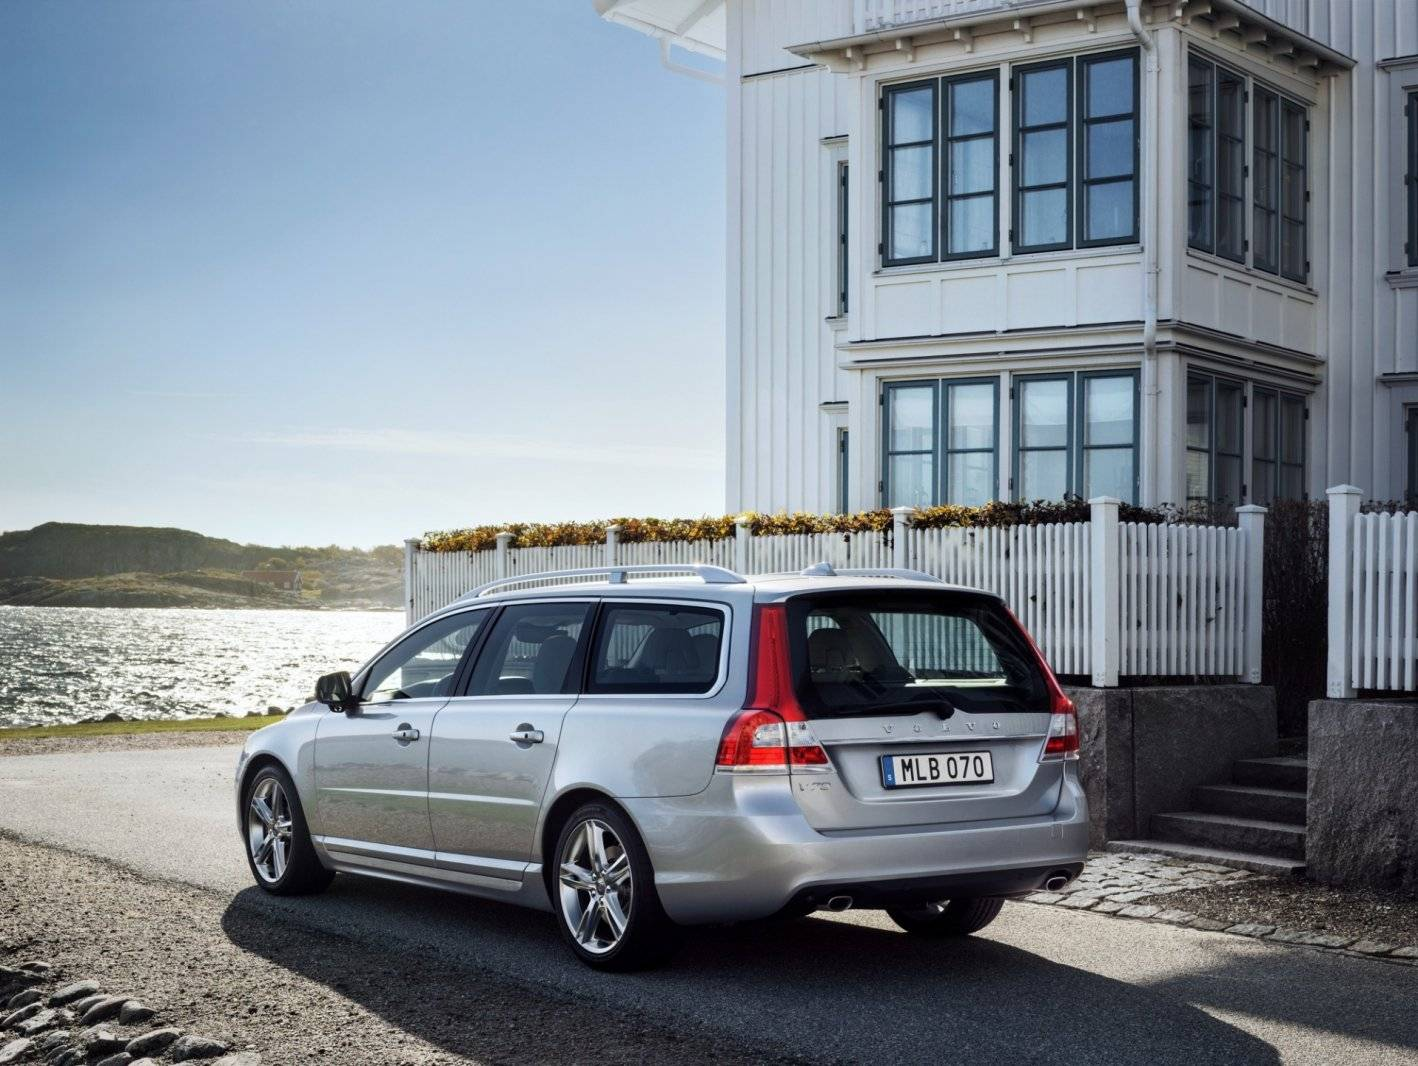 volvo v70 en xc70 schoner en luxer autonieuws. Black Bedroom Furniture Sets. Home Design Ideas